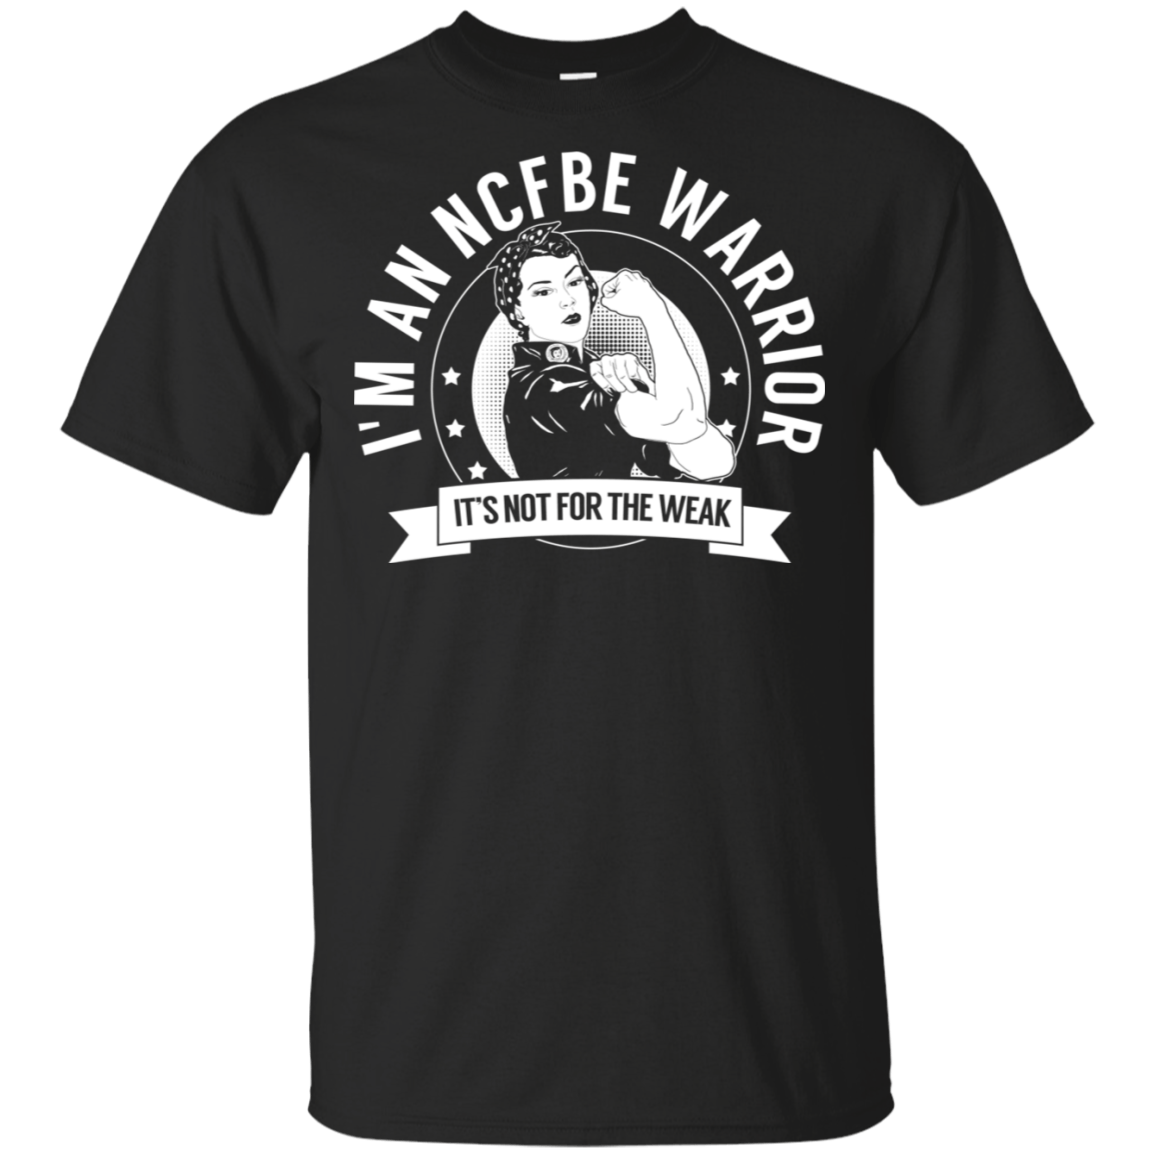 Non-cystic fibrosis bronchiectasis -  NCFBE Warrior NFTW Cotton Unisex Shirt